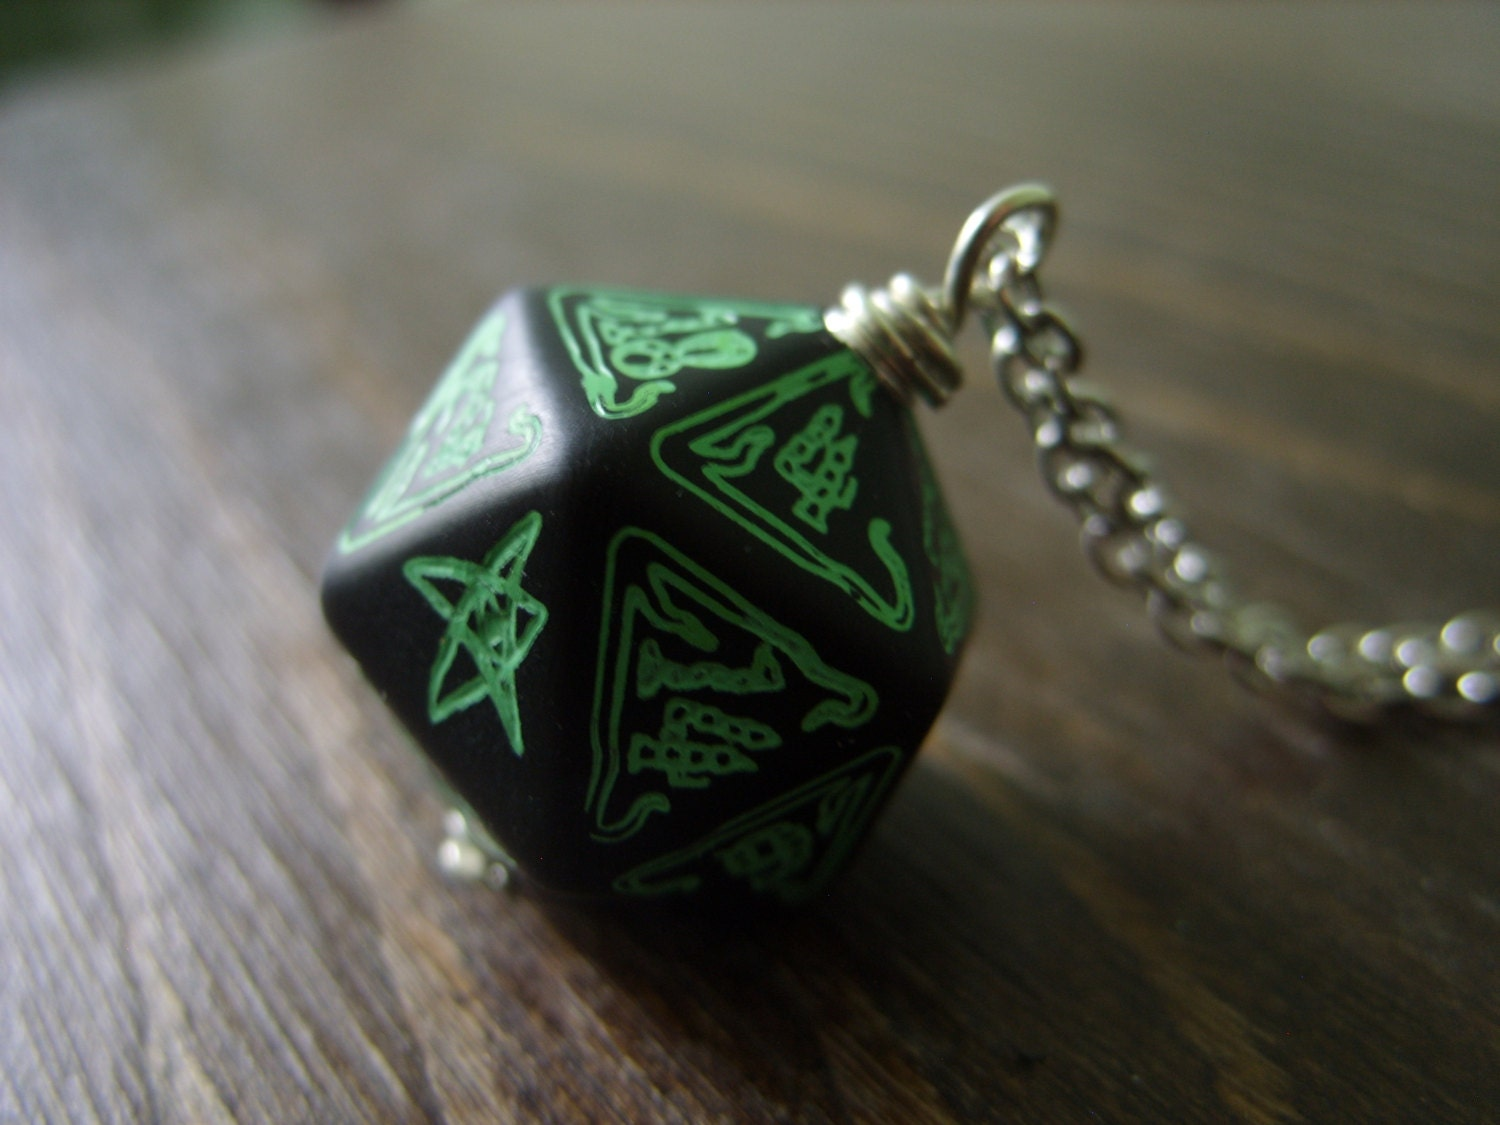 call of cthulhu necklace d20 dice necklace dungeons and